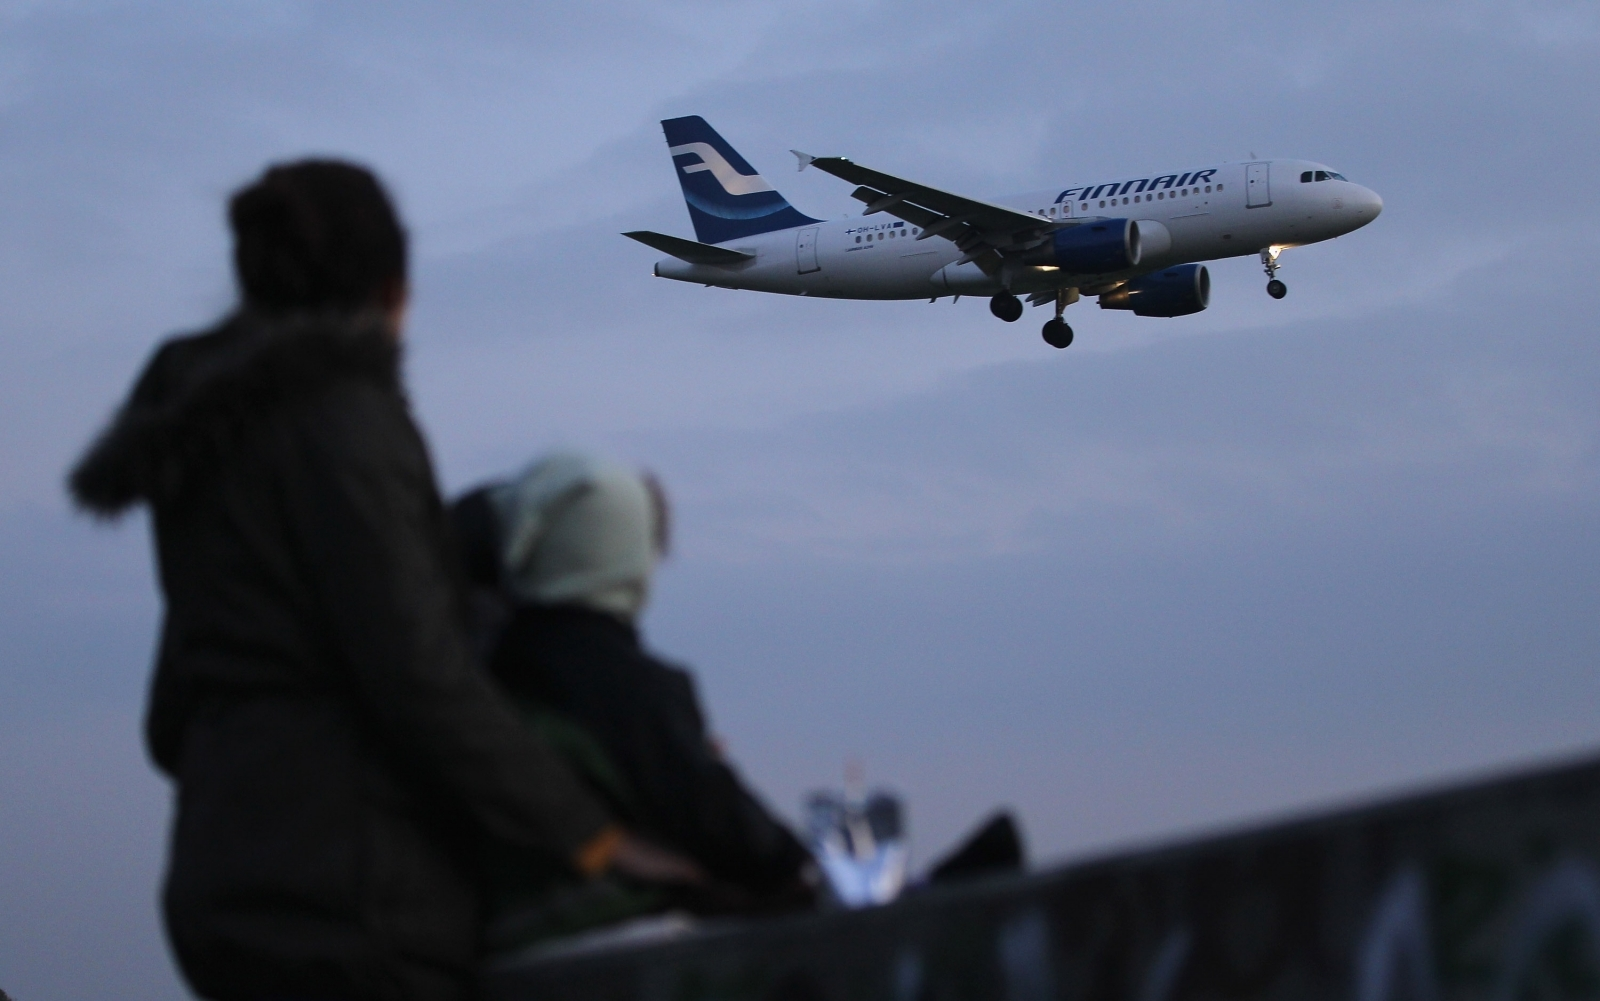 Arriving Finnair plane